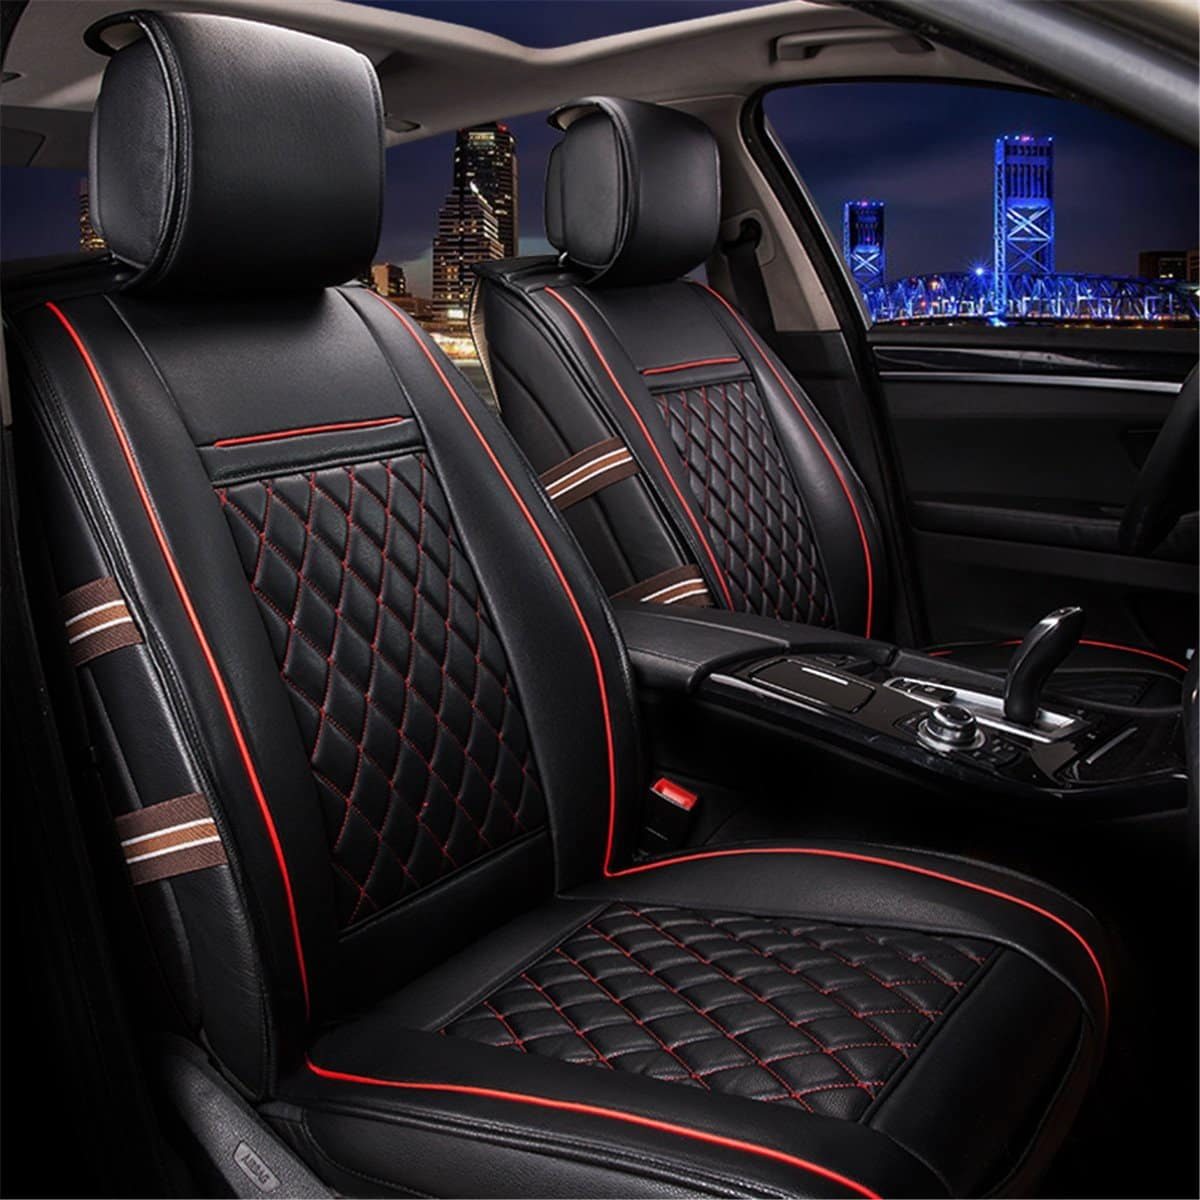 Kitabetty Universal Waterproof Car Seat Cover Knitted Fabric Bucket Seat Cover Car Interior Seat Cover Fit Most Car Truck SUV or Van